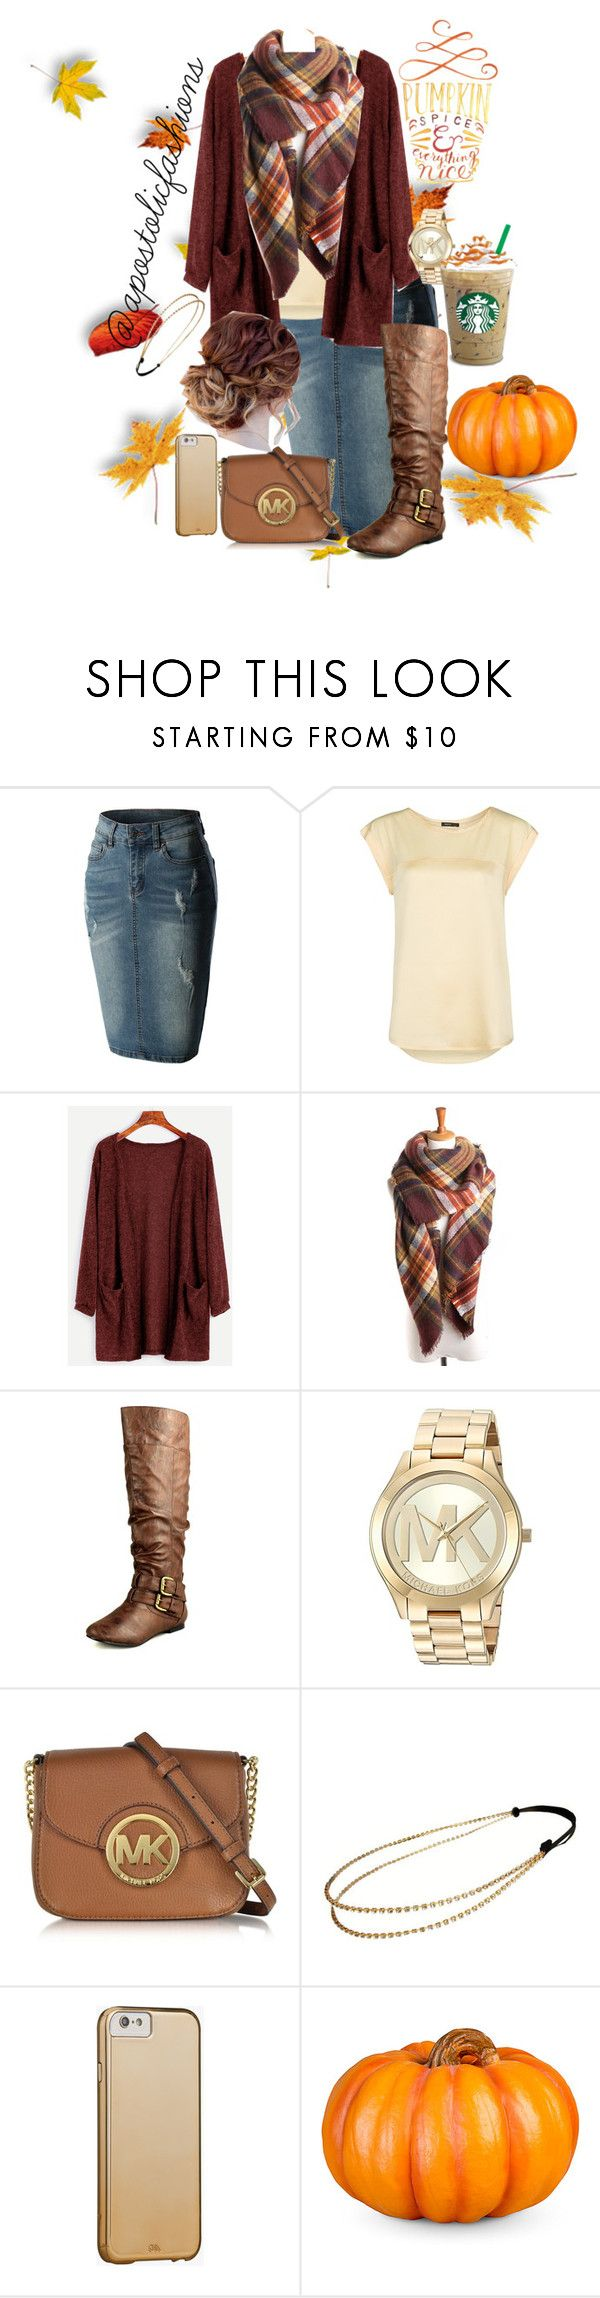 """Apostolic Fashions #1794"" by apostolicfashions ❤ liked on Polyvore featuring MANGO, Nature Breeze, Michael Kors, Chicnova Fashion, Case-Mate and Improvements"